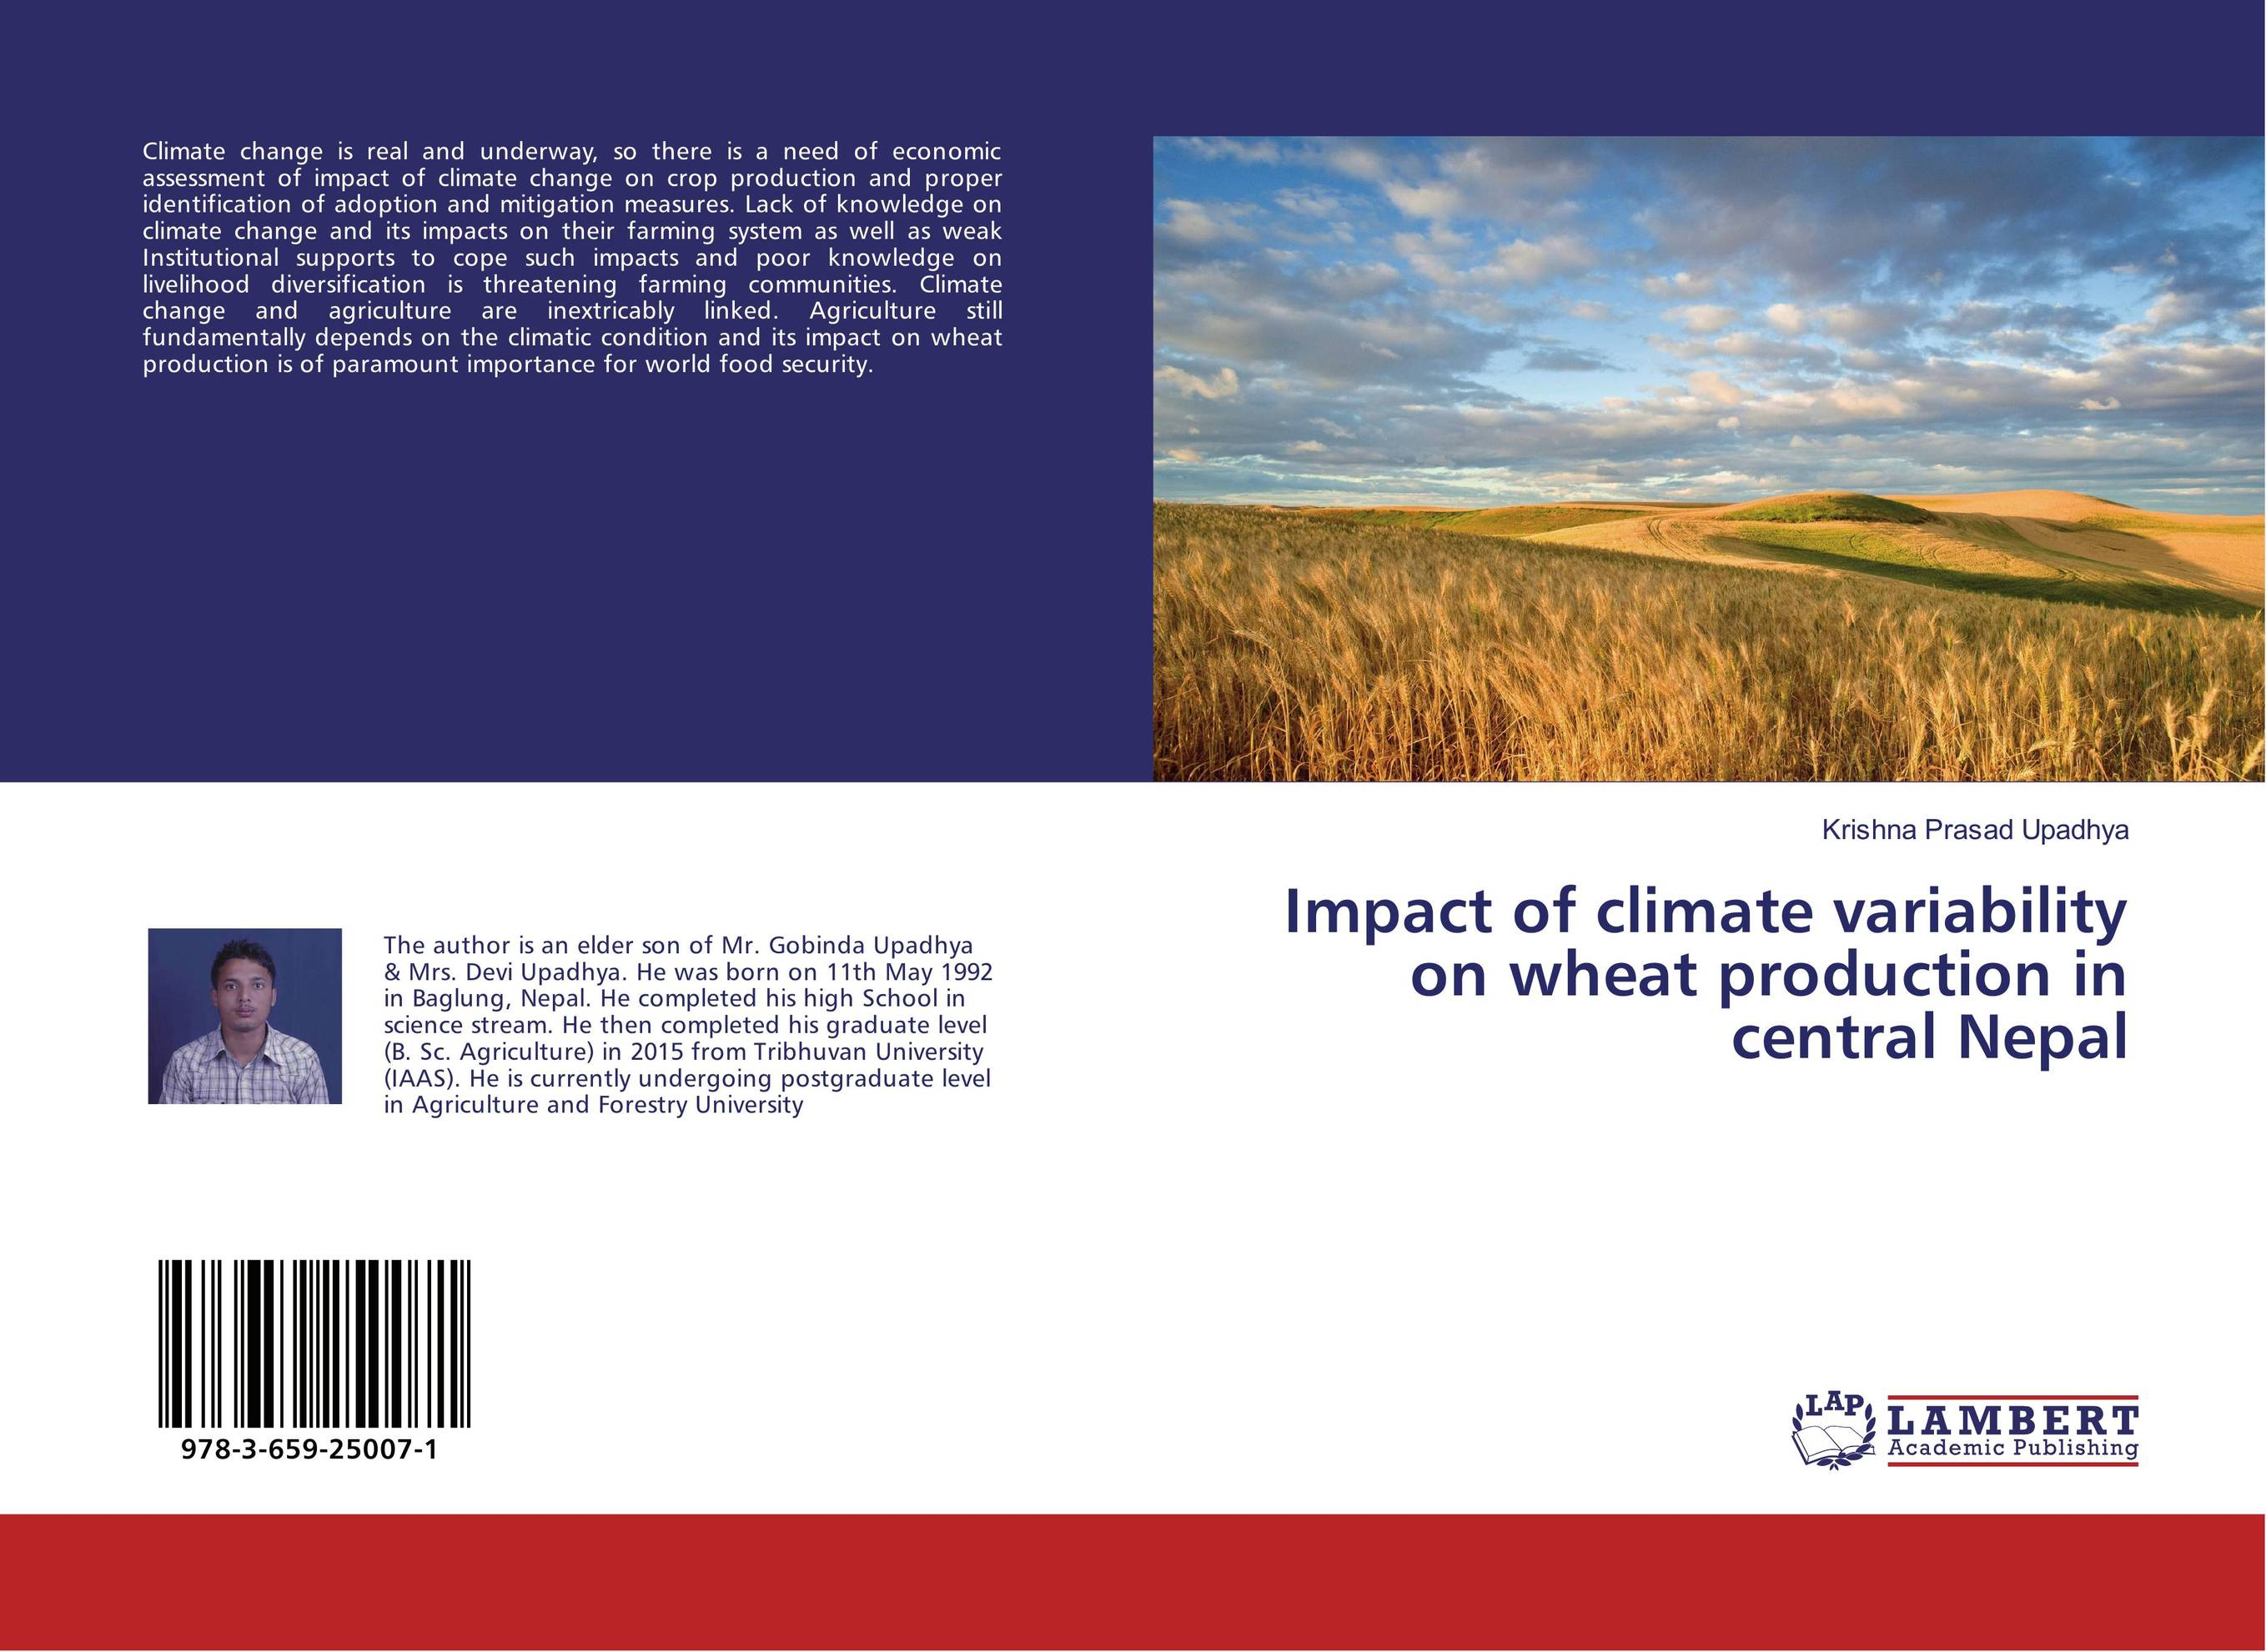 Impact of climate variability on wheat production in central Nepal suh jude abenwi the economic impact of climate variability